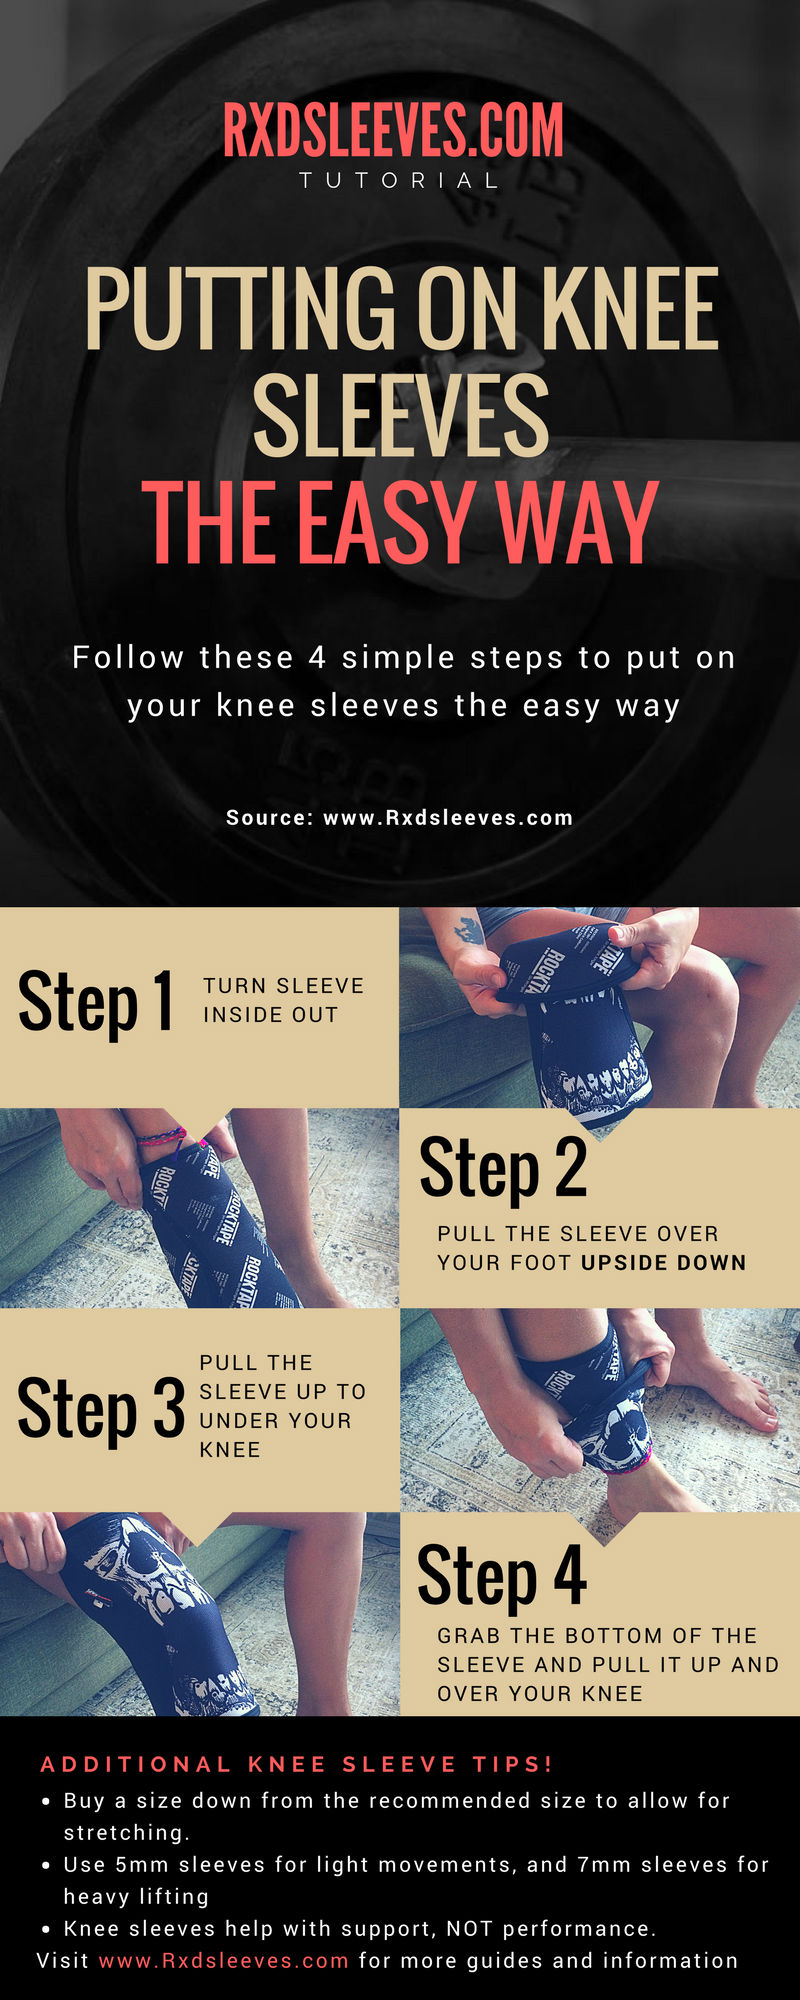 Putting on knee sleeves the easy way infographic